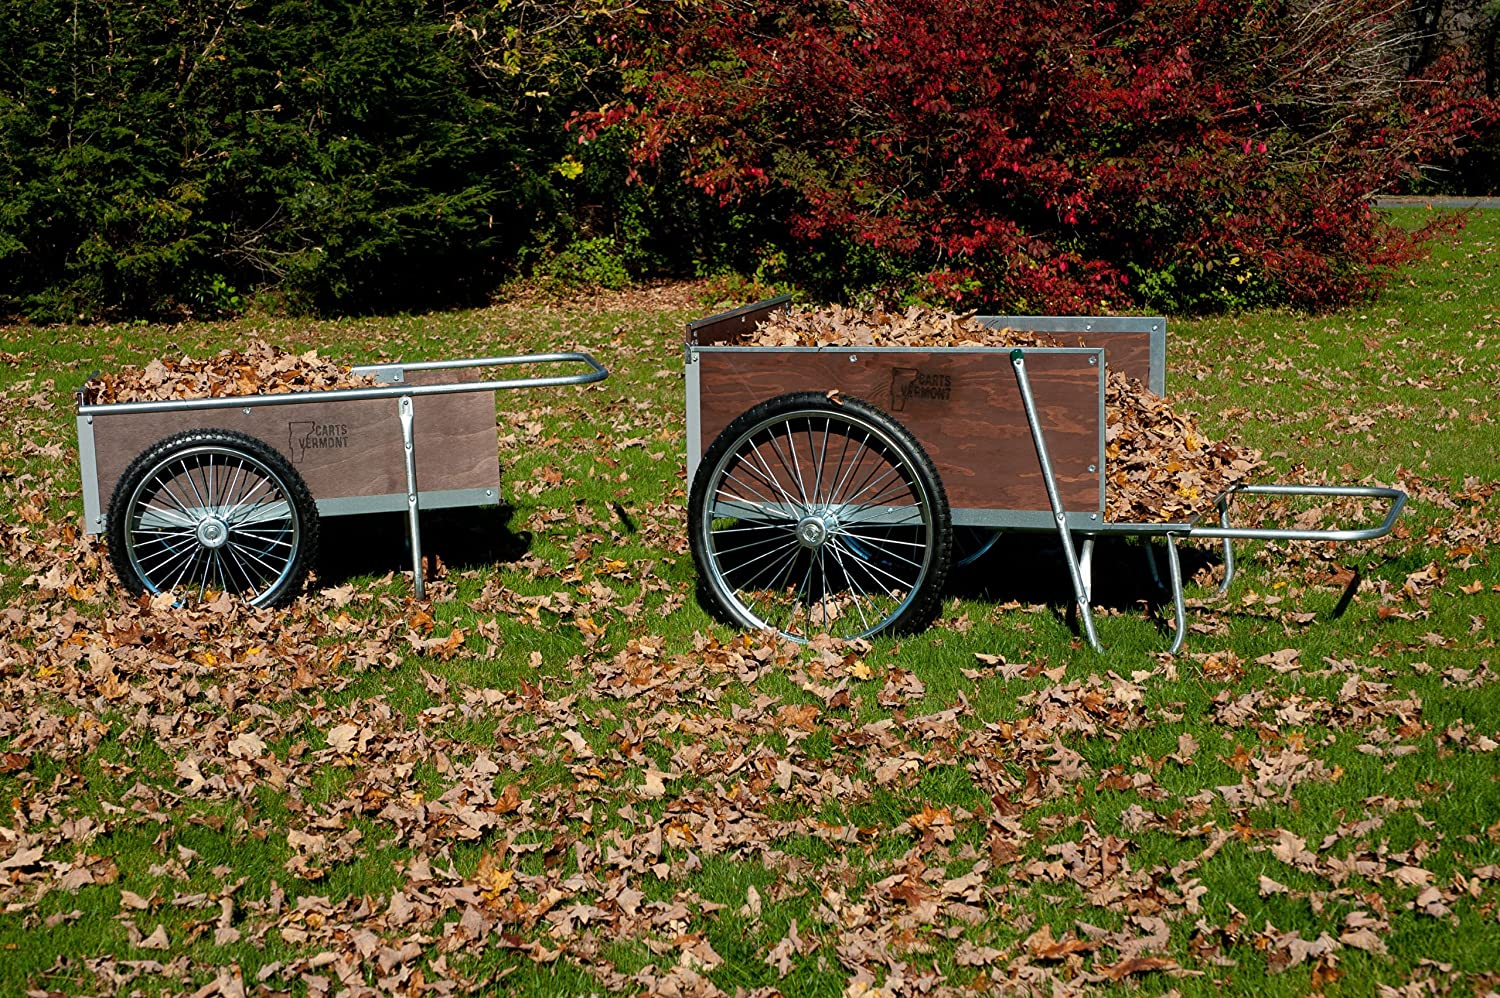 Amazon.com : M26P Large Yard/Garden Cart with Pneumatic wheels ...